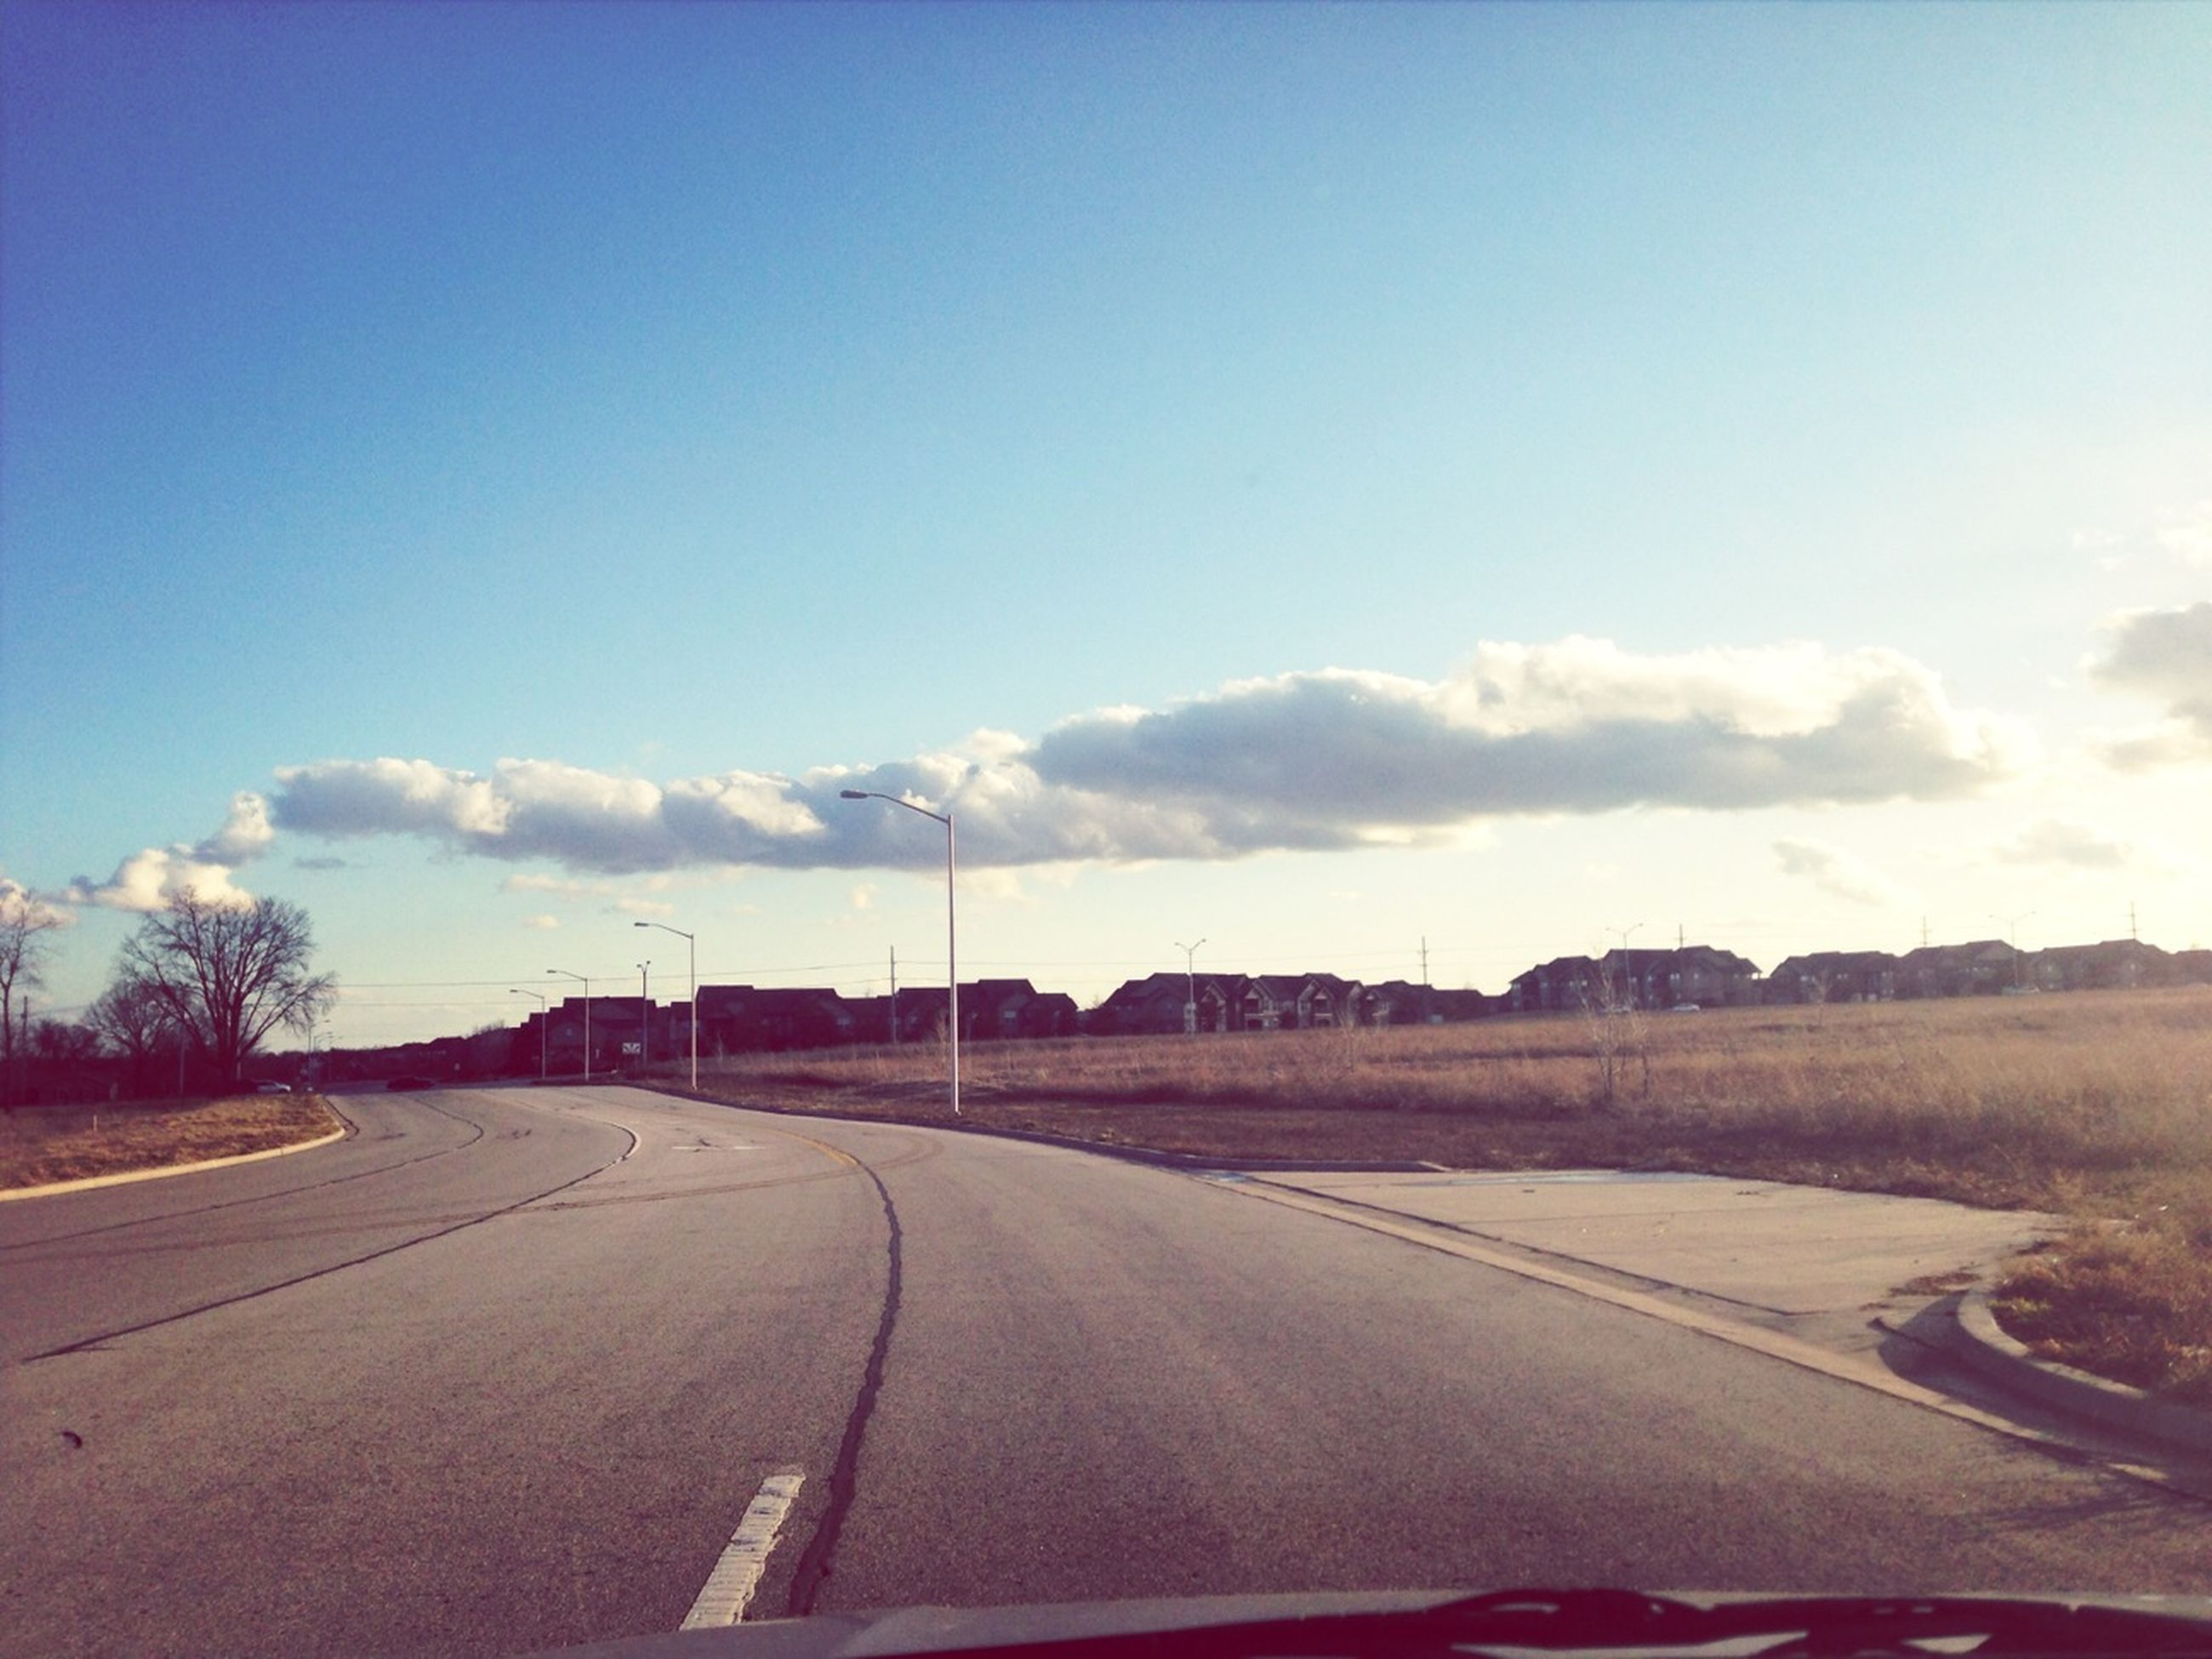 transportation, the way forward, road, diminishing perspective, road marking, sky, vanishing point, country road, landscape, empty, blue, long, empty road, asphalt, cloud - sky, cloud, street, highway, outdoors, tranquil scene